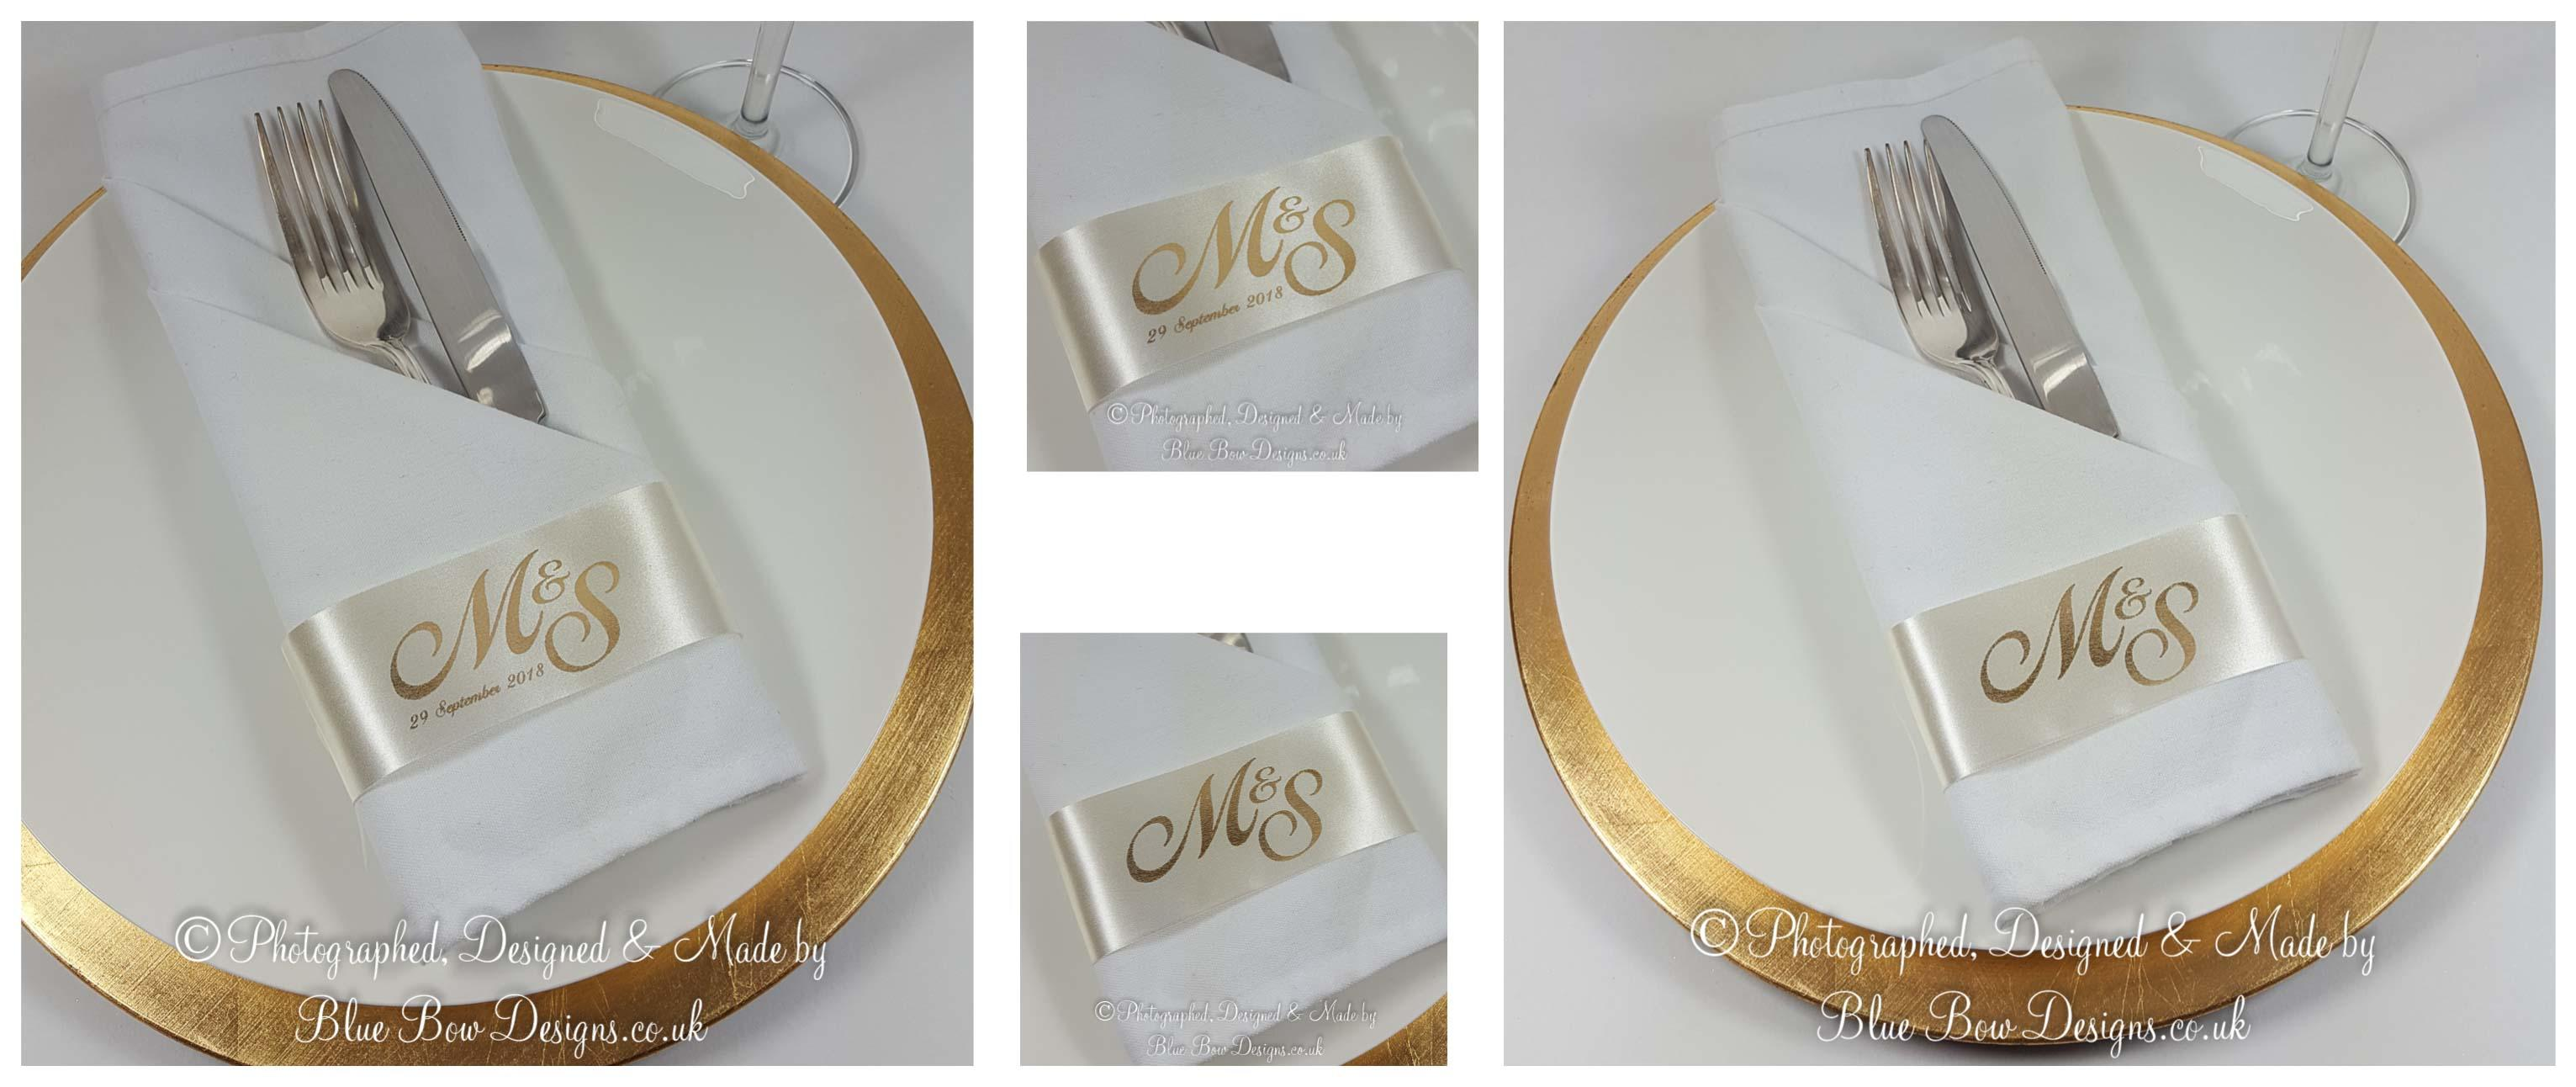 Personalised Ivory and Gold Monogrammed Napkin Ring ribbons